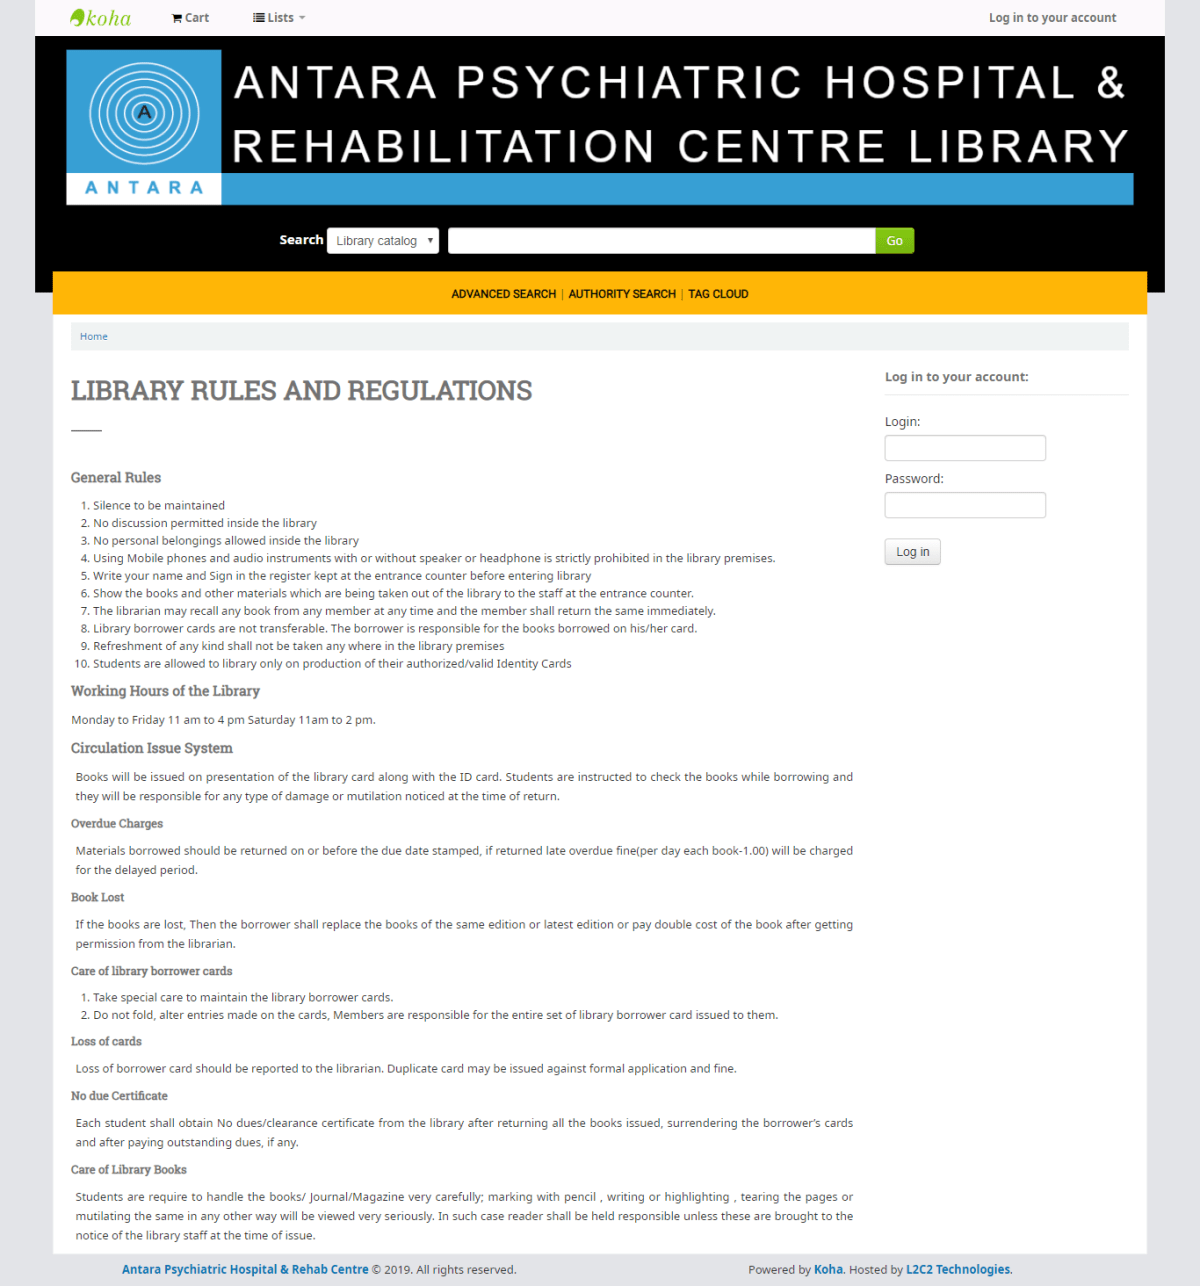 Antara Psychiatric Hospital & Rehabilitation Centre Library partners with L2C2 Technologies